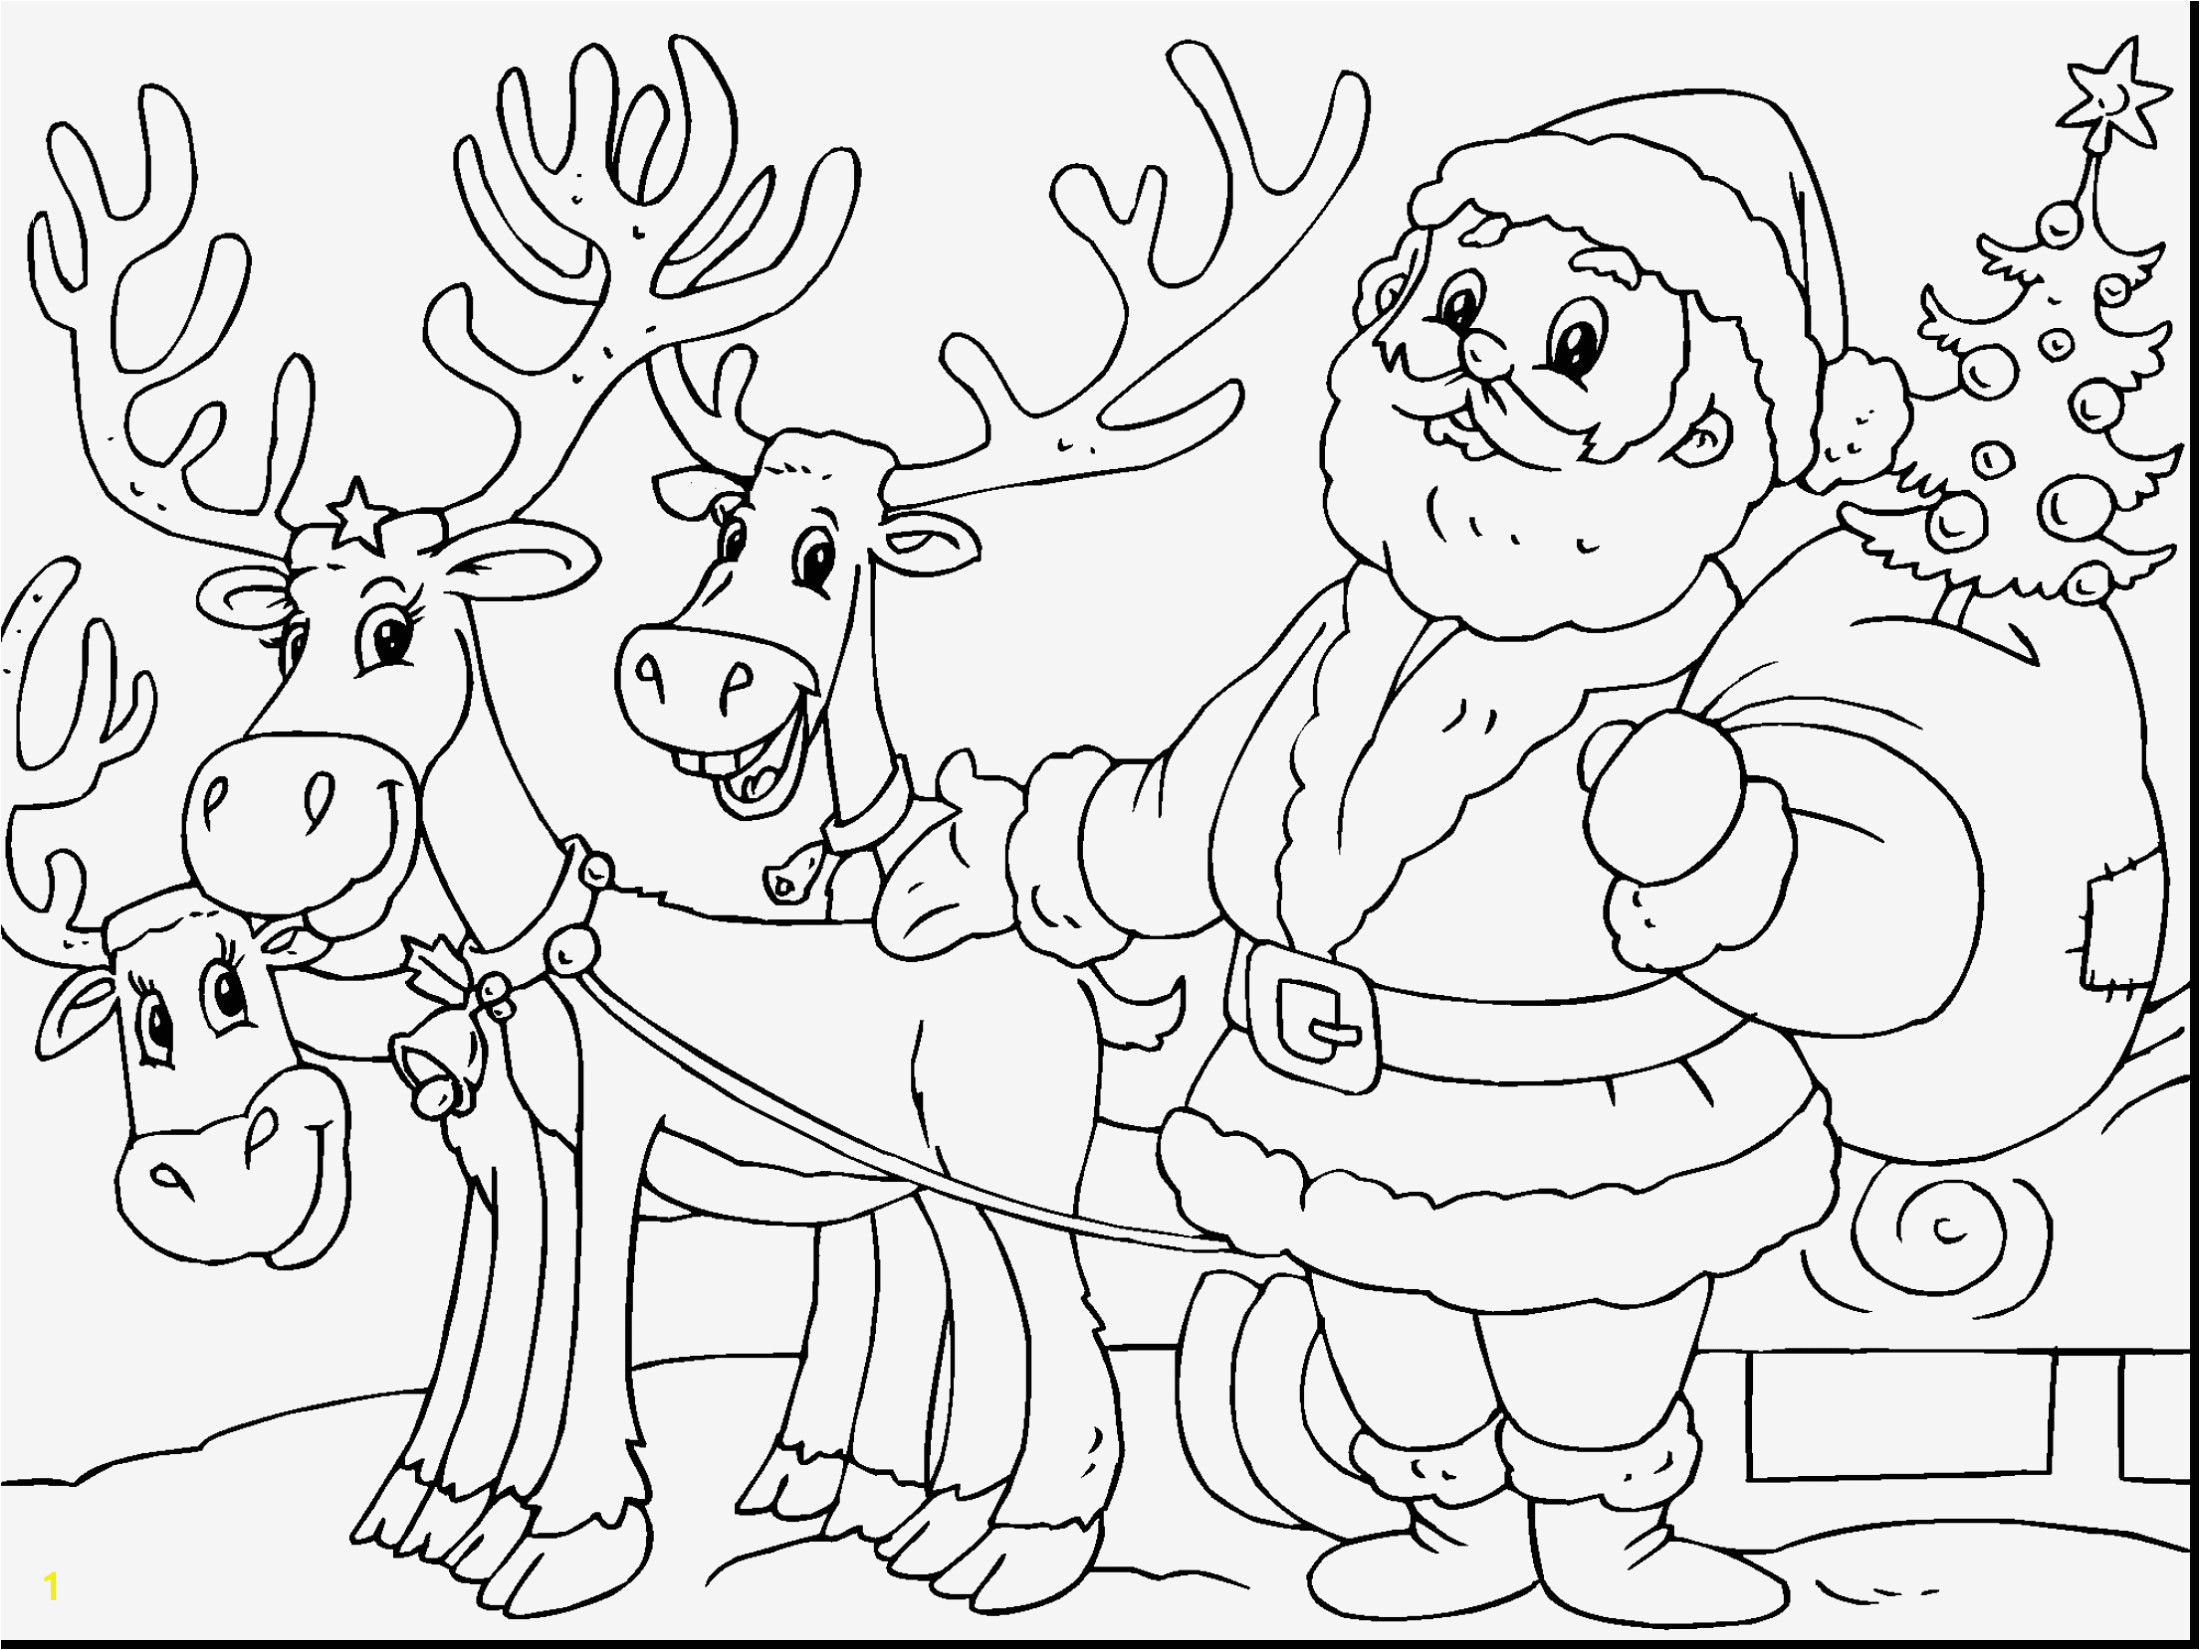 Santa Claus with Reindeer Coloring Pages 30 Santa Claus Coloring Pages Gallery